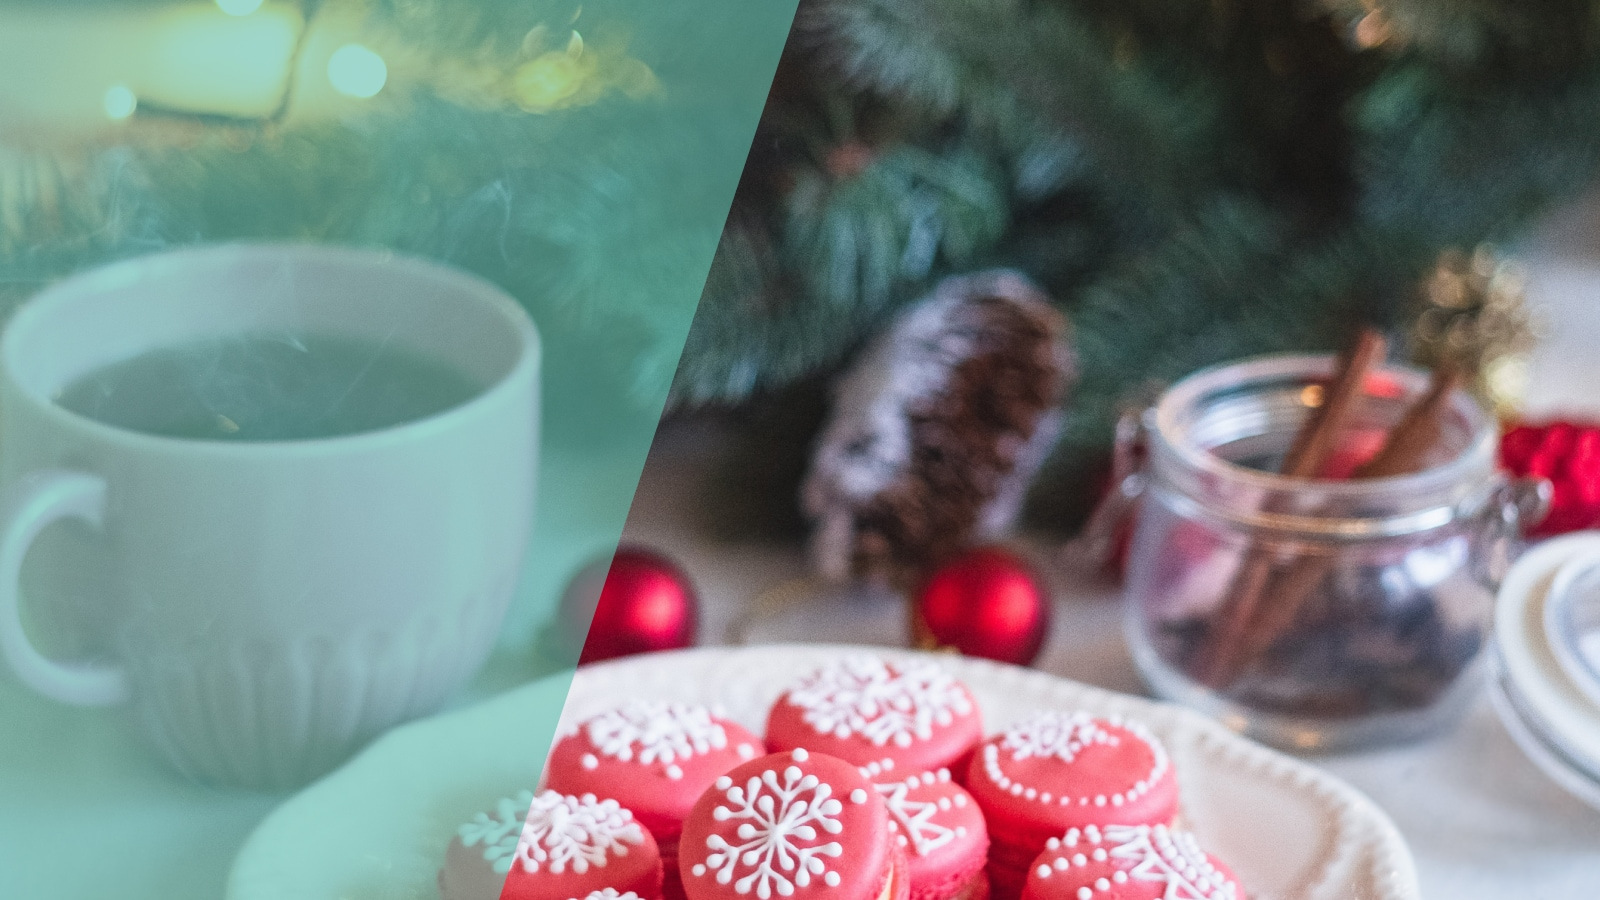 3 Christmas gift ideas for creatives and (Webflow) designers